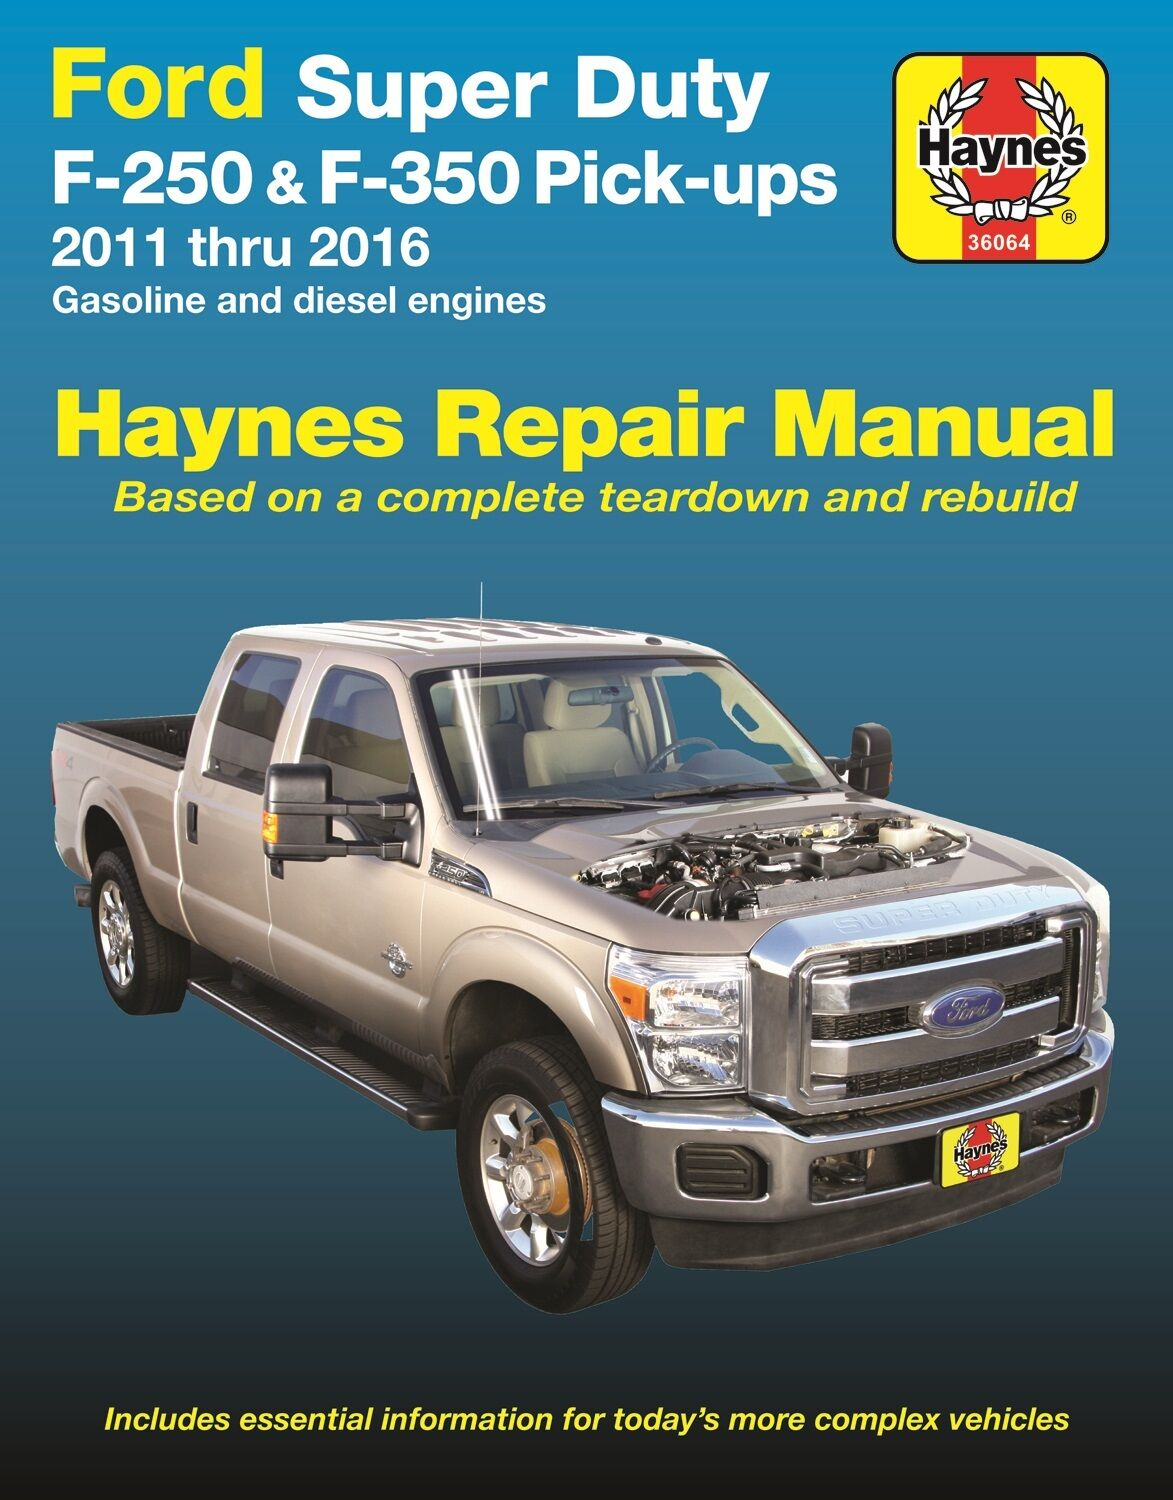 2011-2016 Ford Super Duty F250 F350 Gas Diesel Repair Service Shop Manual  922569 1 of 1FREE Shipping See More